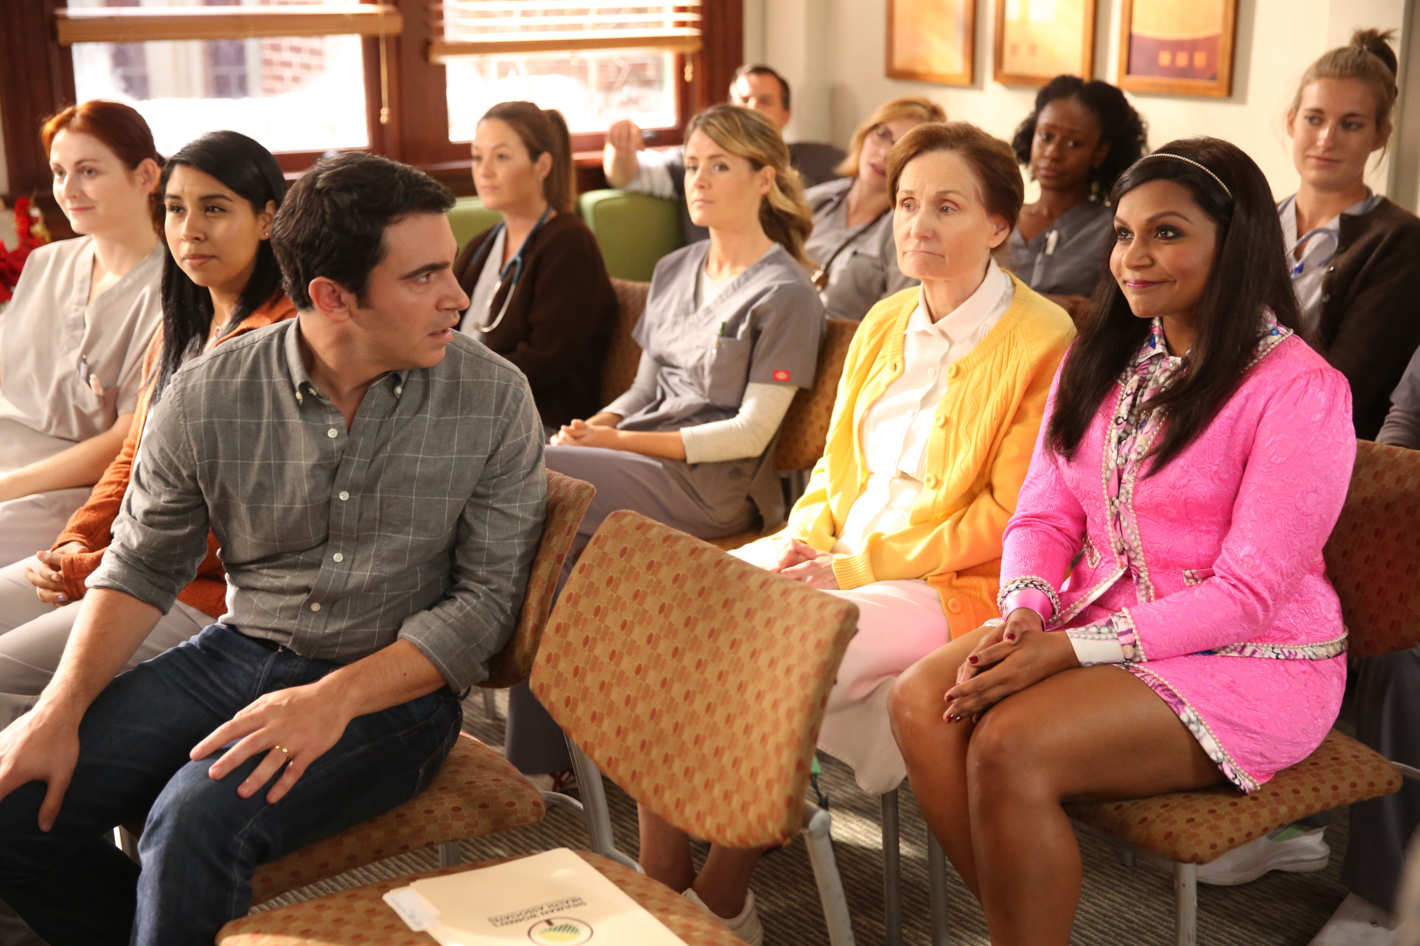 bd2cefd2bb0 The Mindy Project  The Signature Looks and Fashion of Mindy